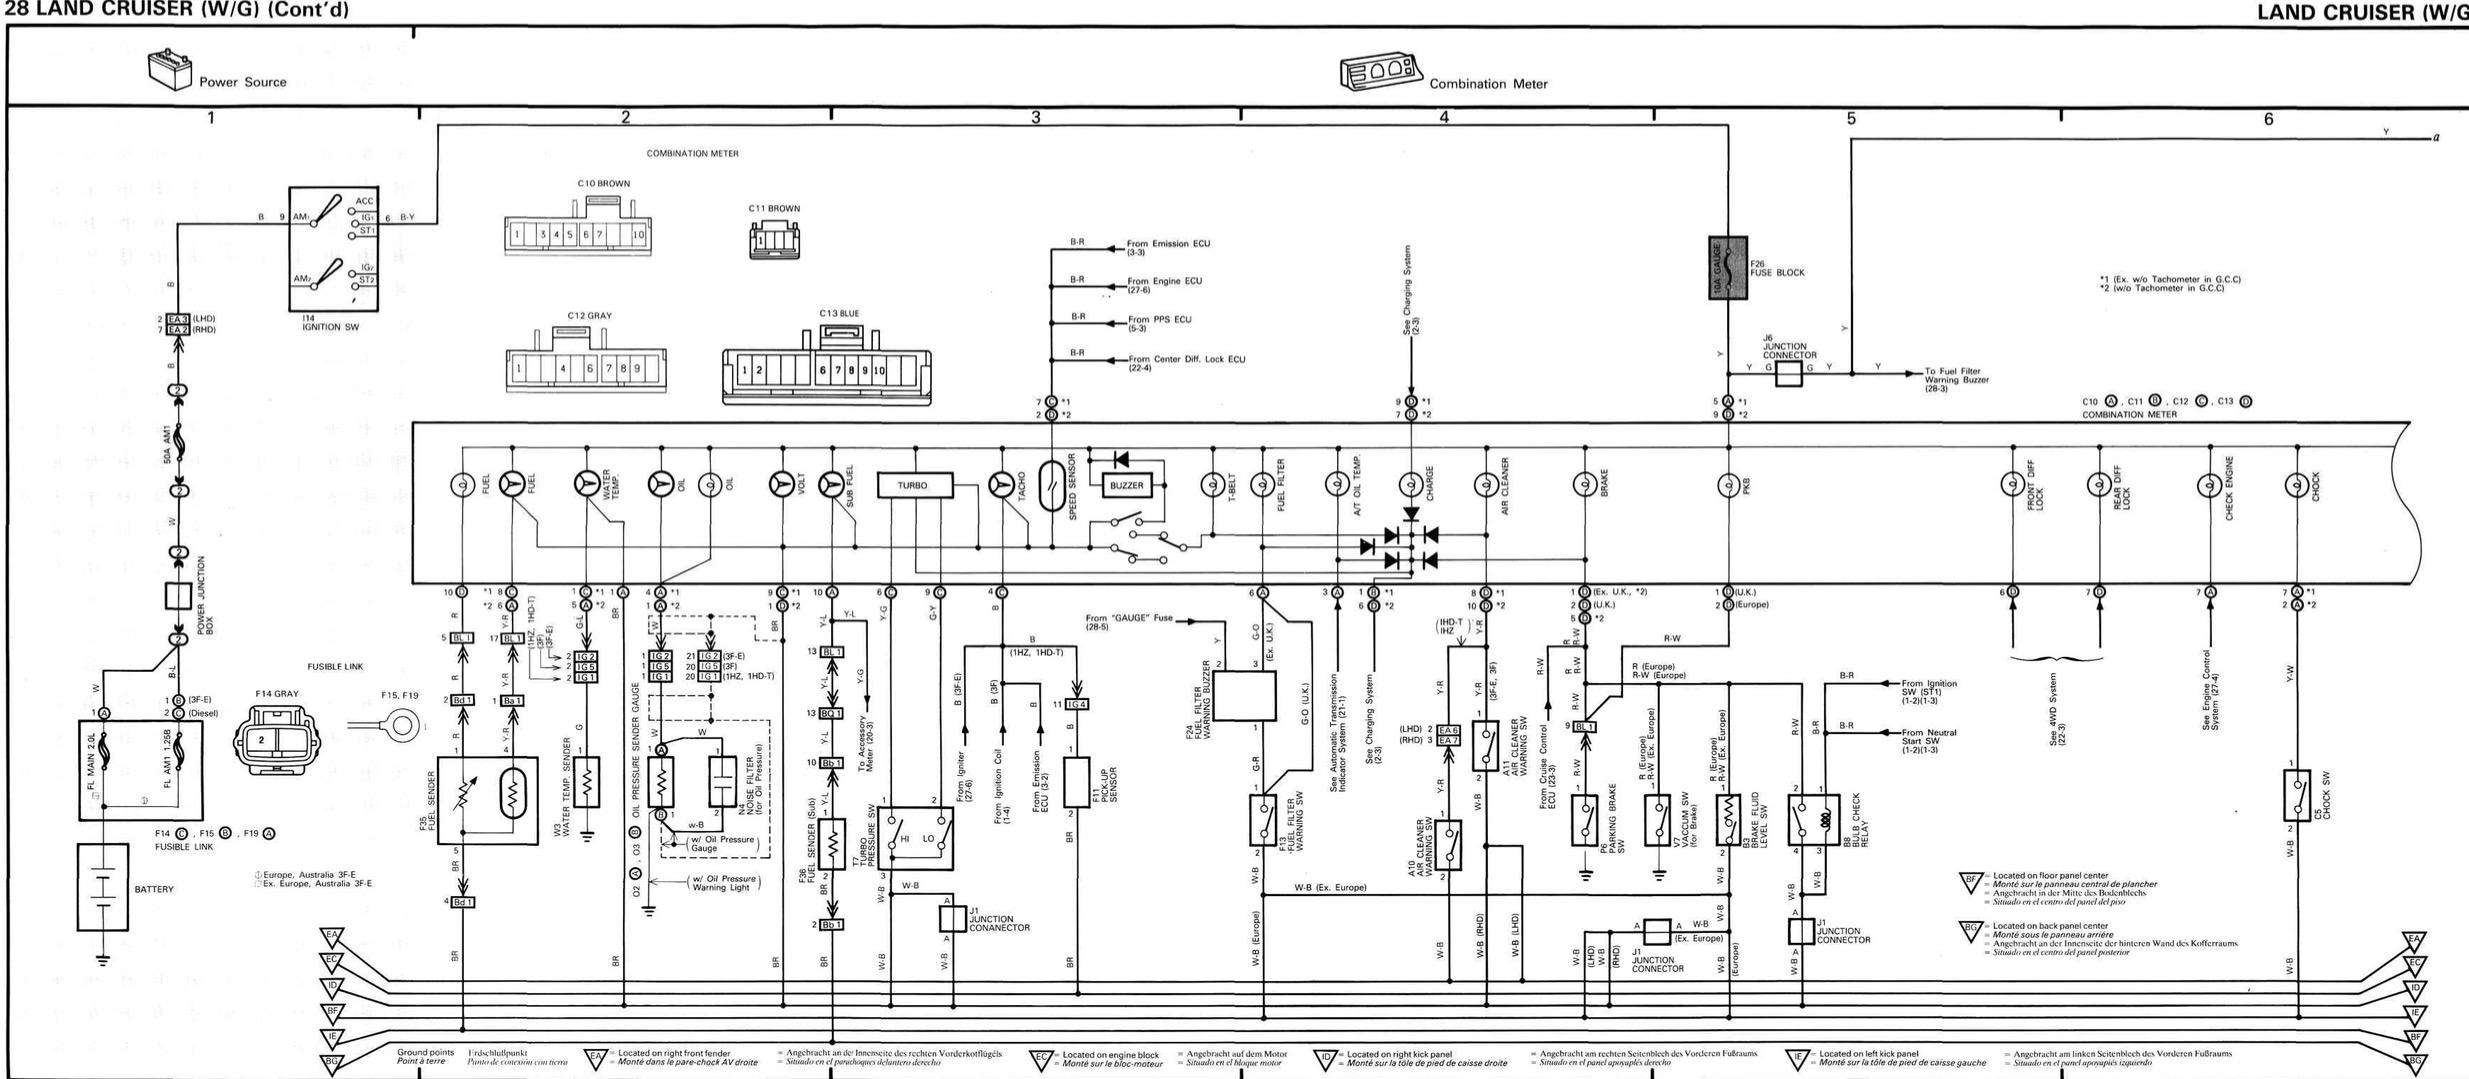 oil pressure sender wiring schematic? land cruiser club oil pressure warning light wiring diagram at reclaimingppi.co